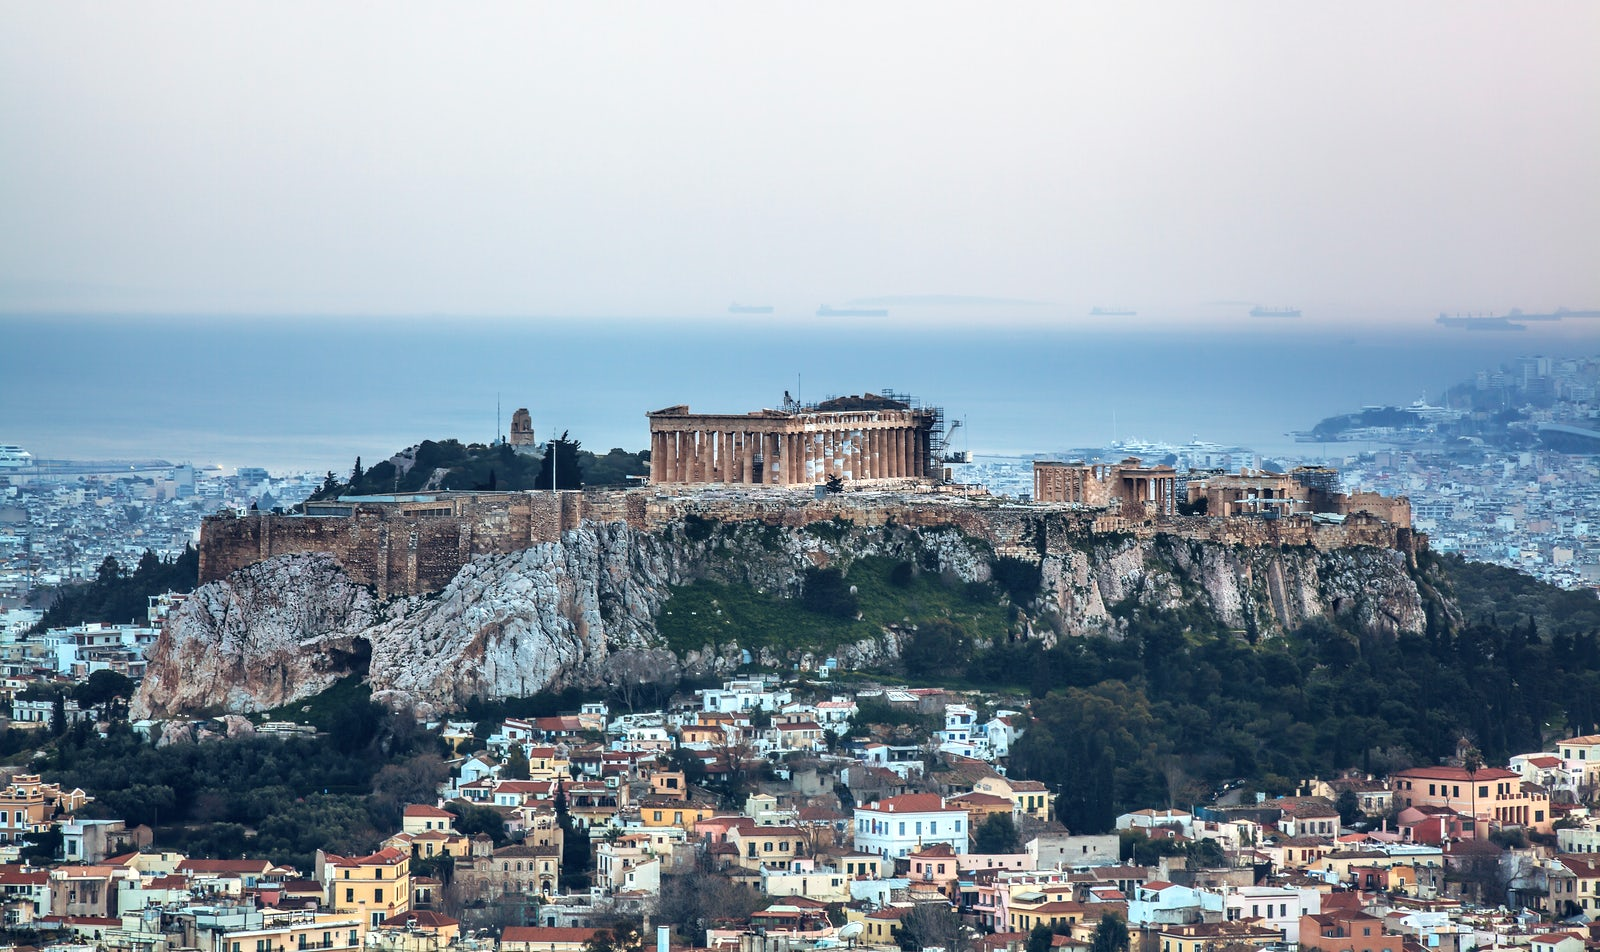 !i18n:es:data.cities:athens.picture.caption